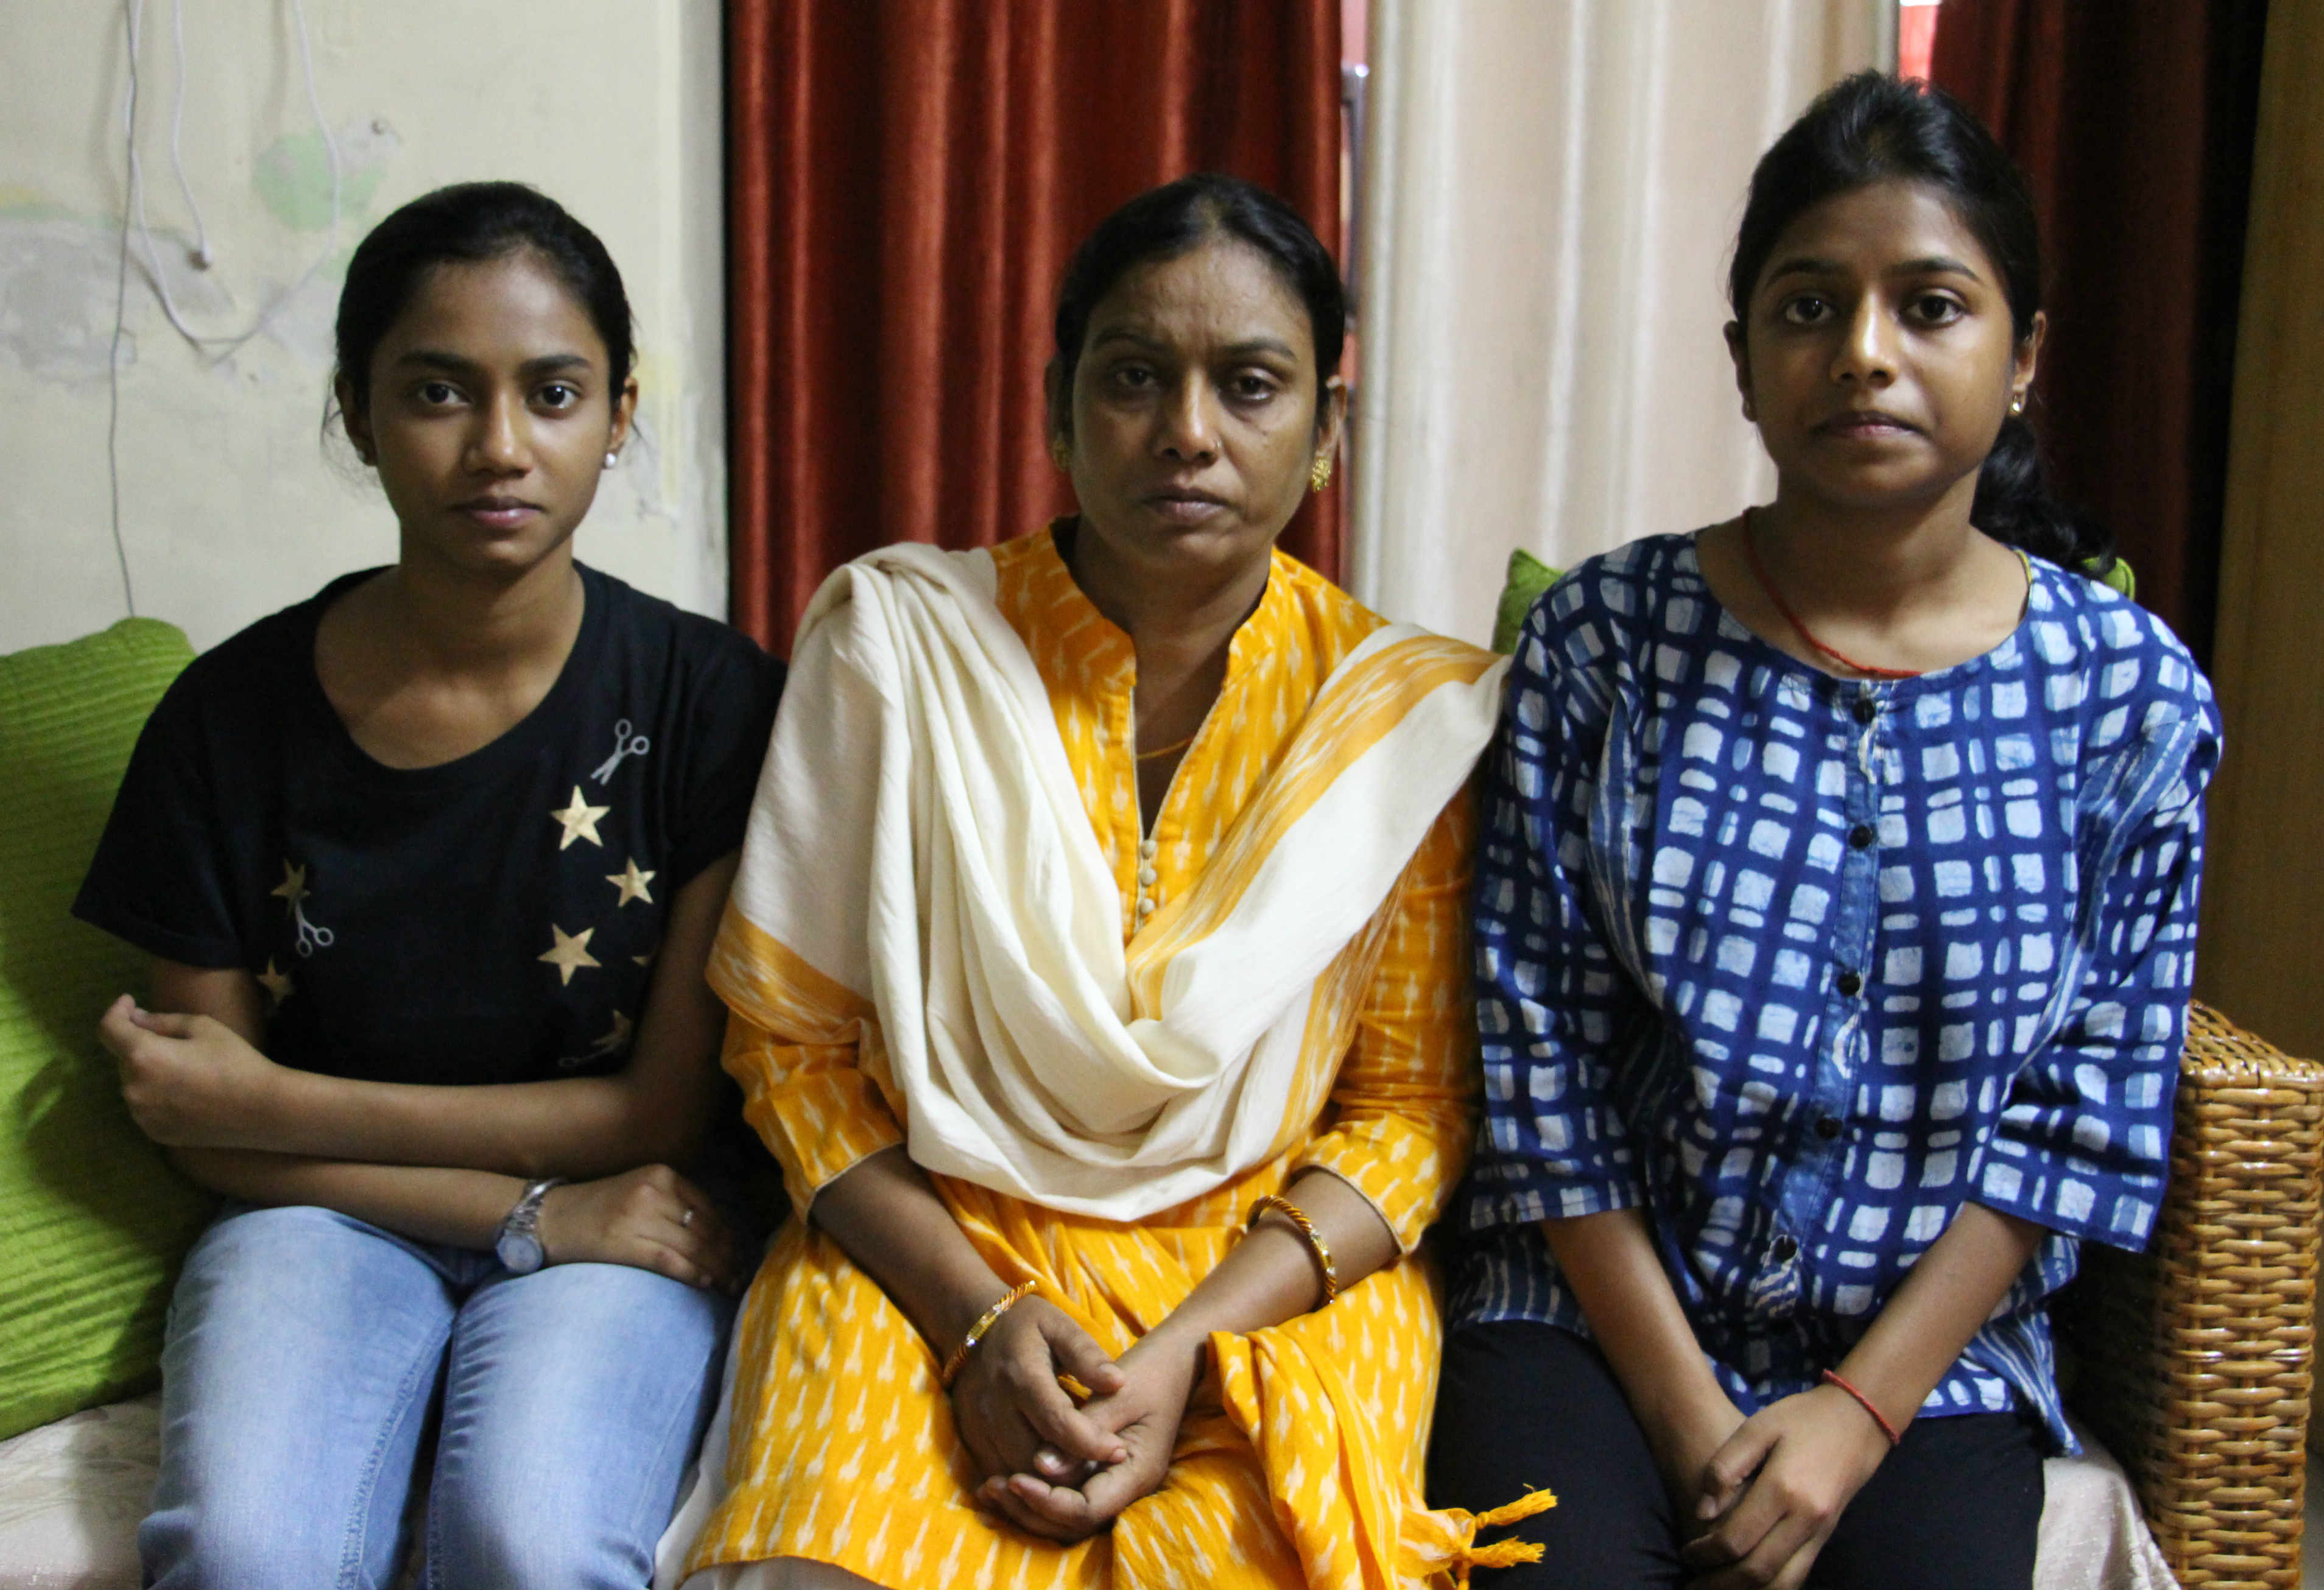 Taruna with her daughters at their home in Ghazipur. Photo credit: Aabid Shafi